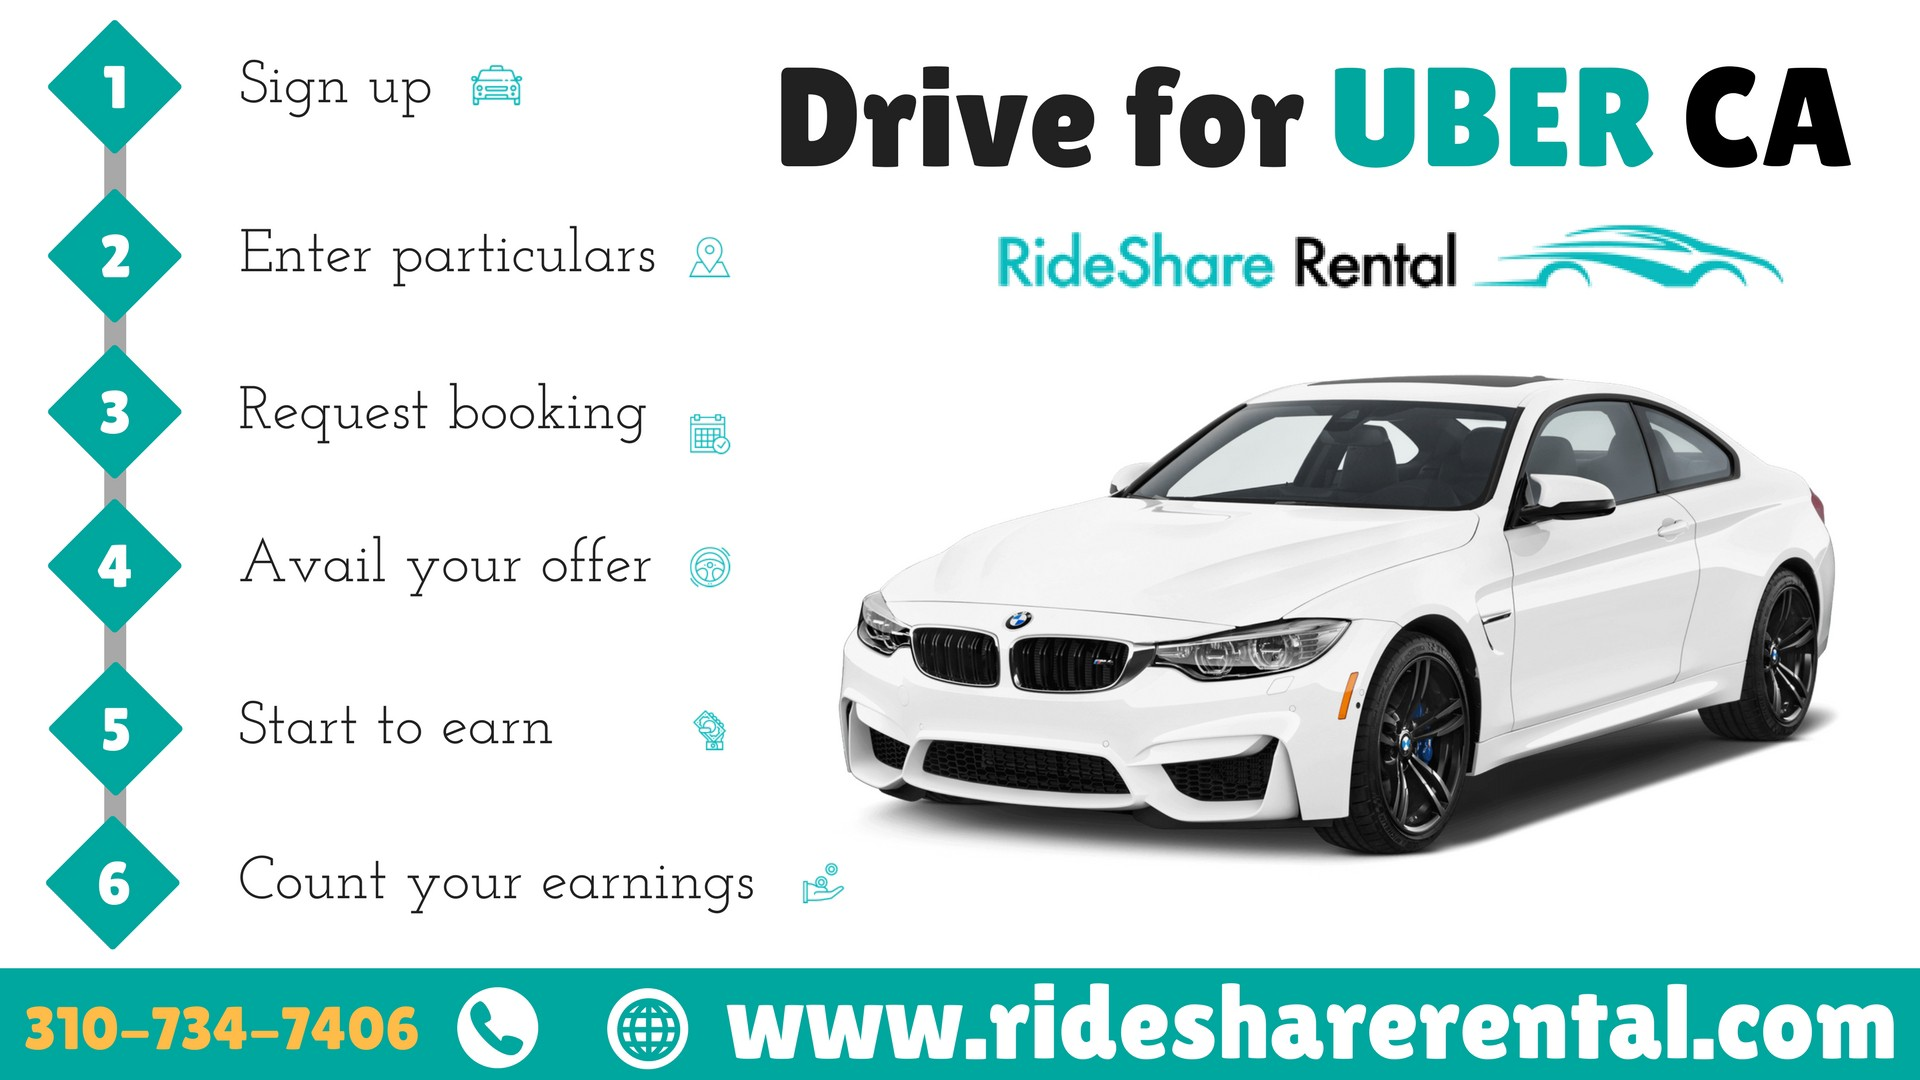 Lyft Car Rental >> Rent A Car To Drive For Uber And Lyft Rideshare Rental